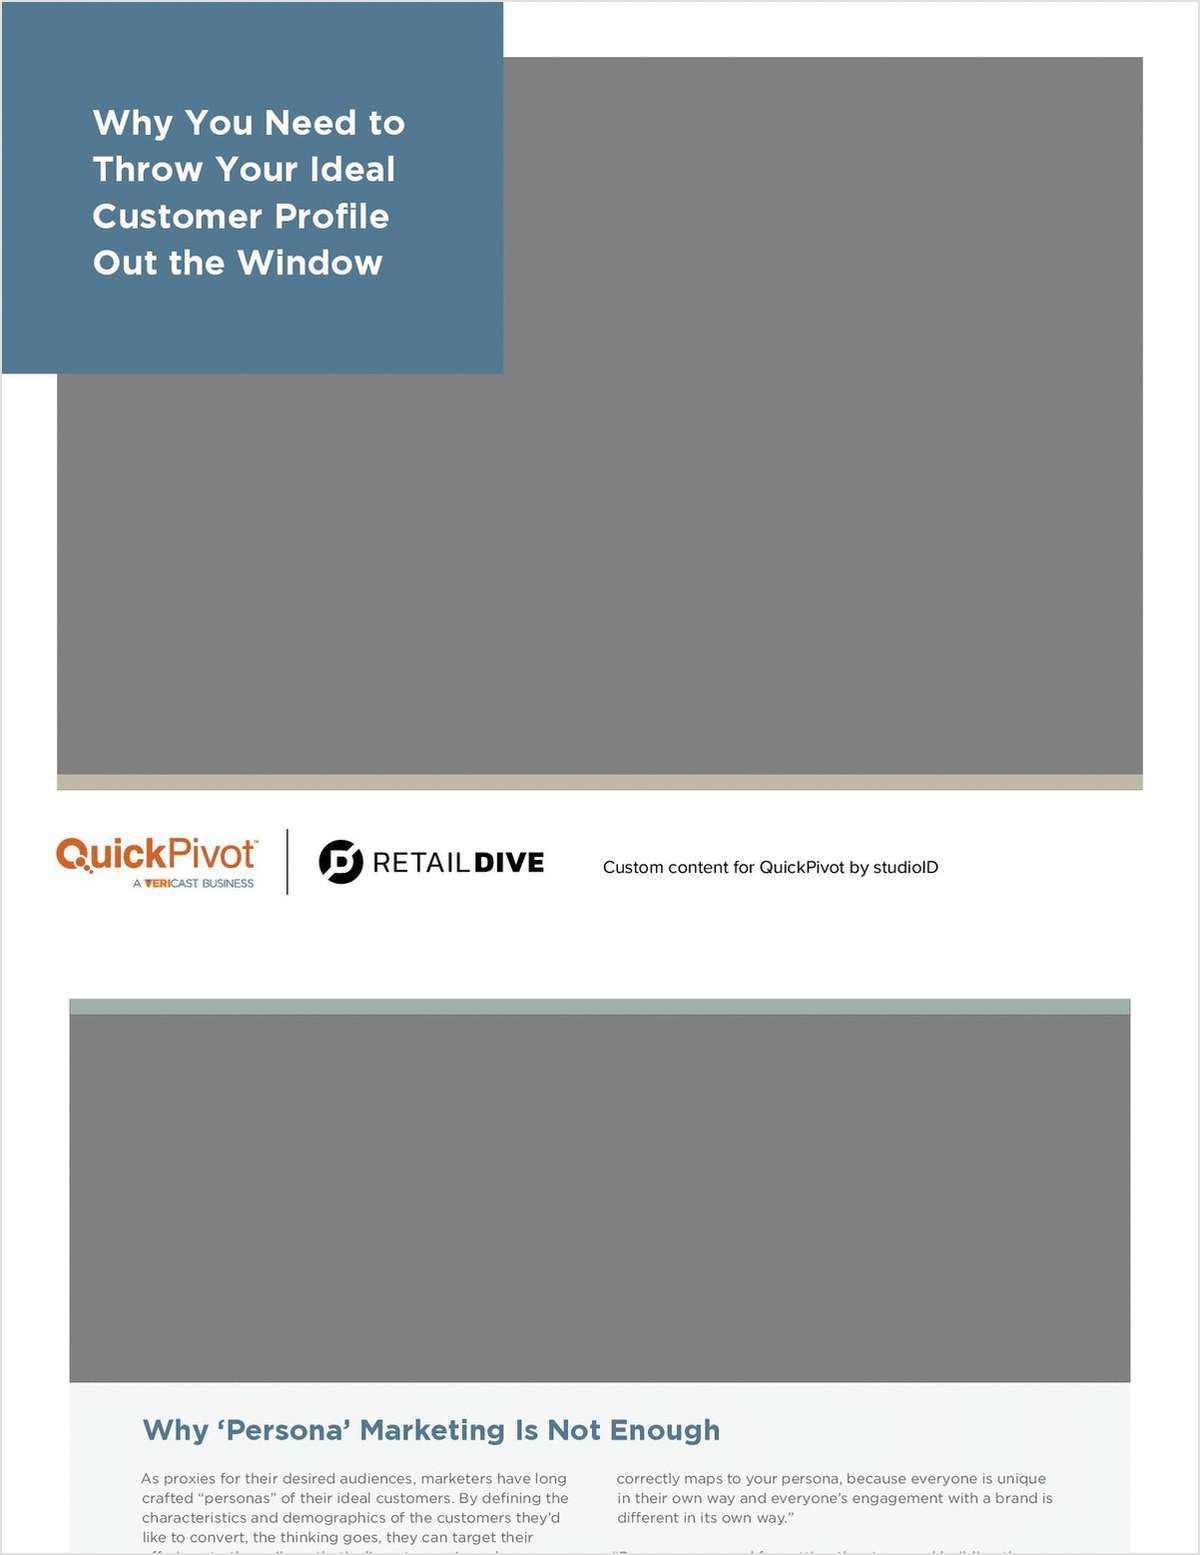 Why You Need to Throw Your Ideal Customer Profile Out the Window